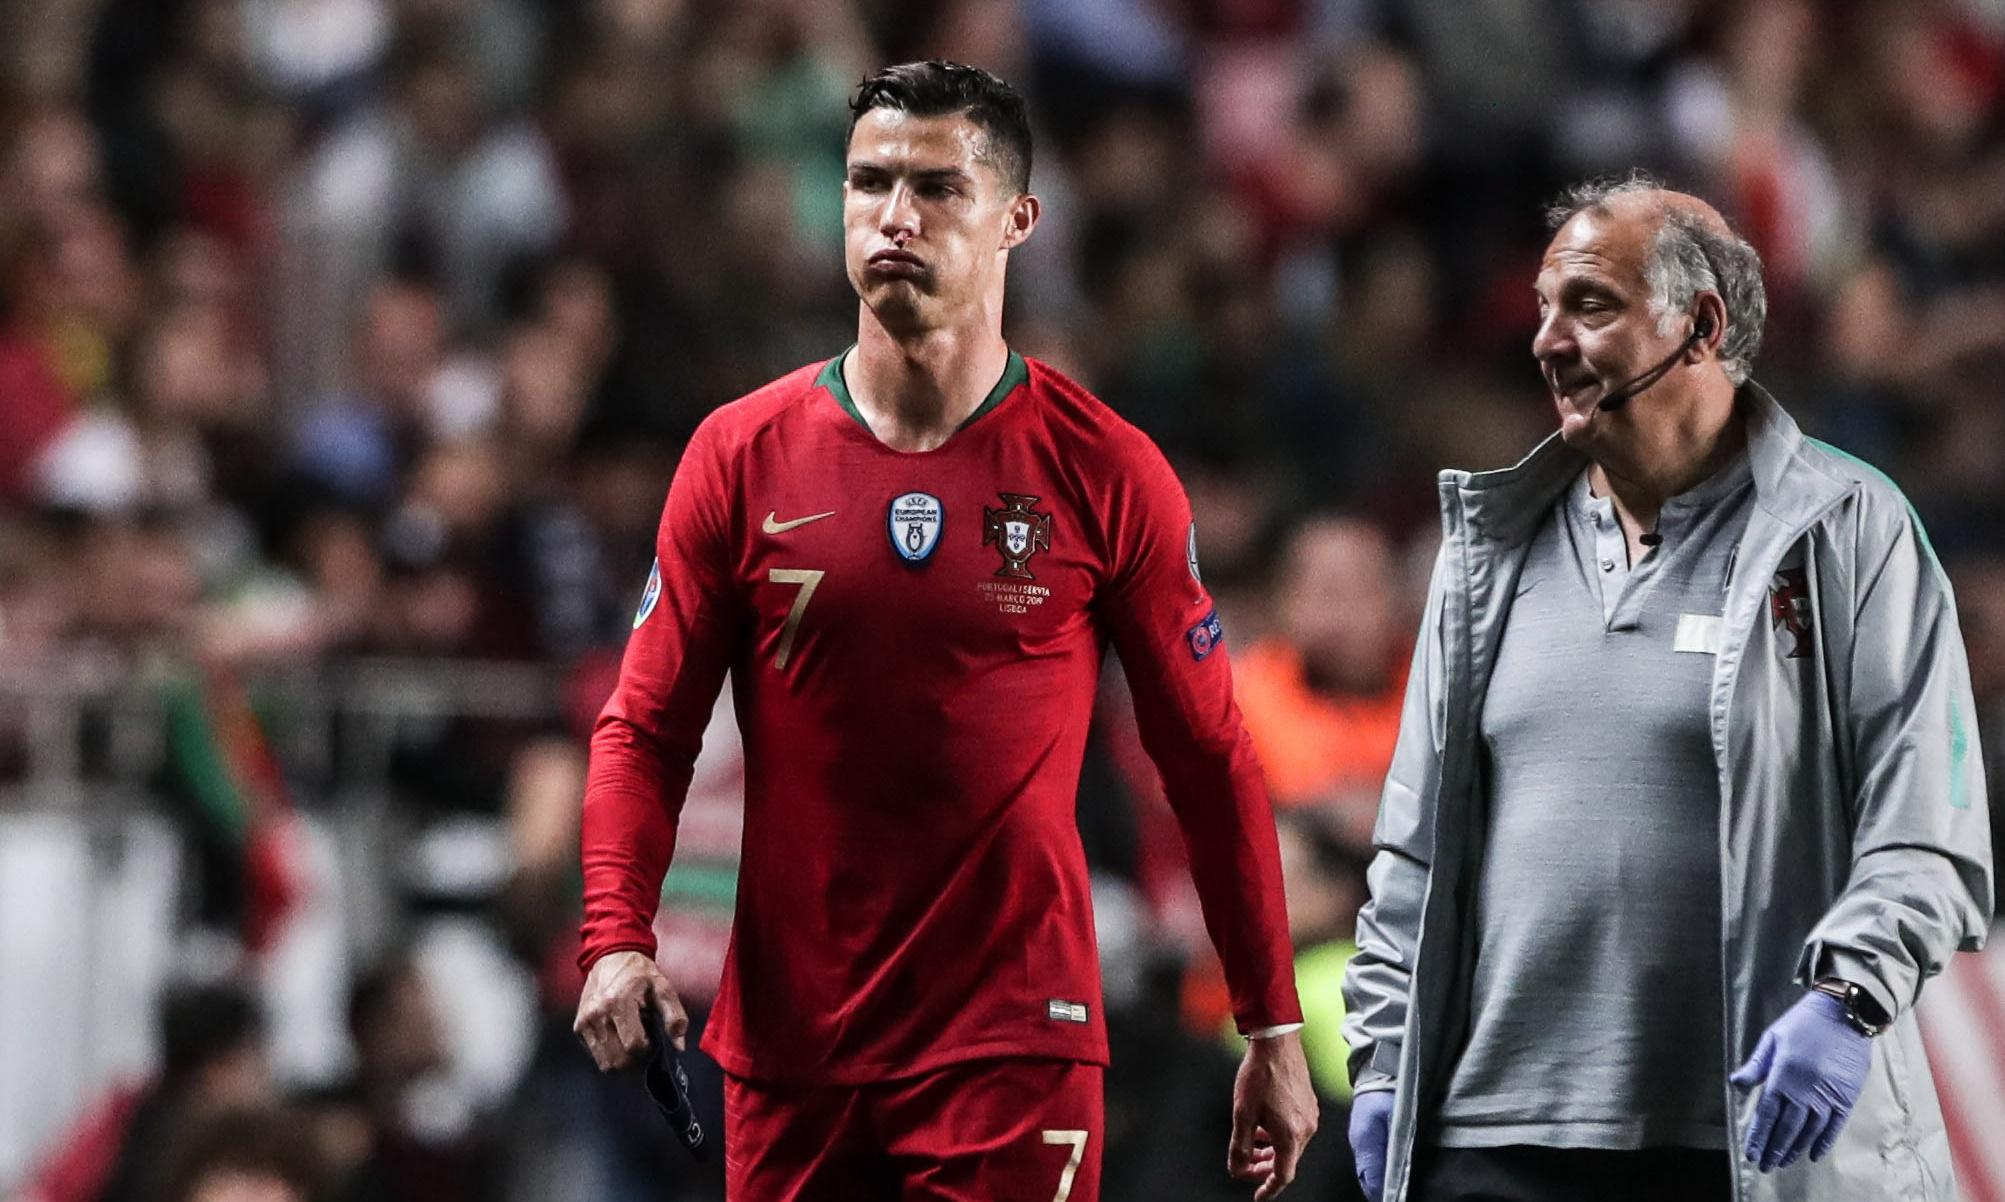 Euro 2020 qualifiers: Ronaldo injured as Portugal are held at home by Serbia